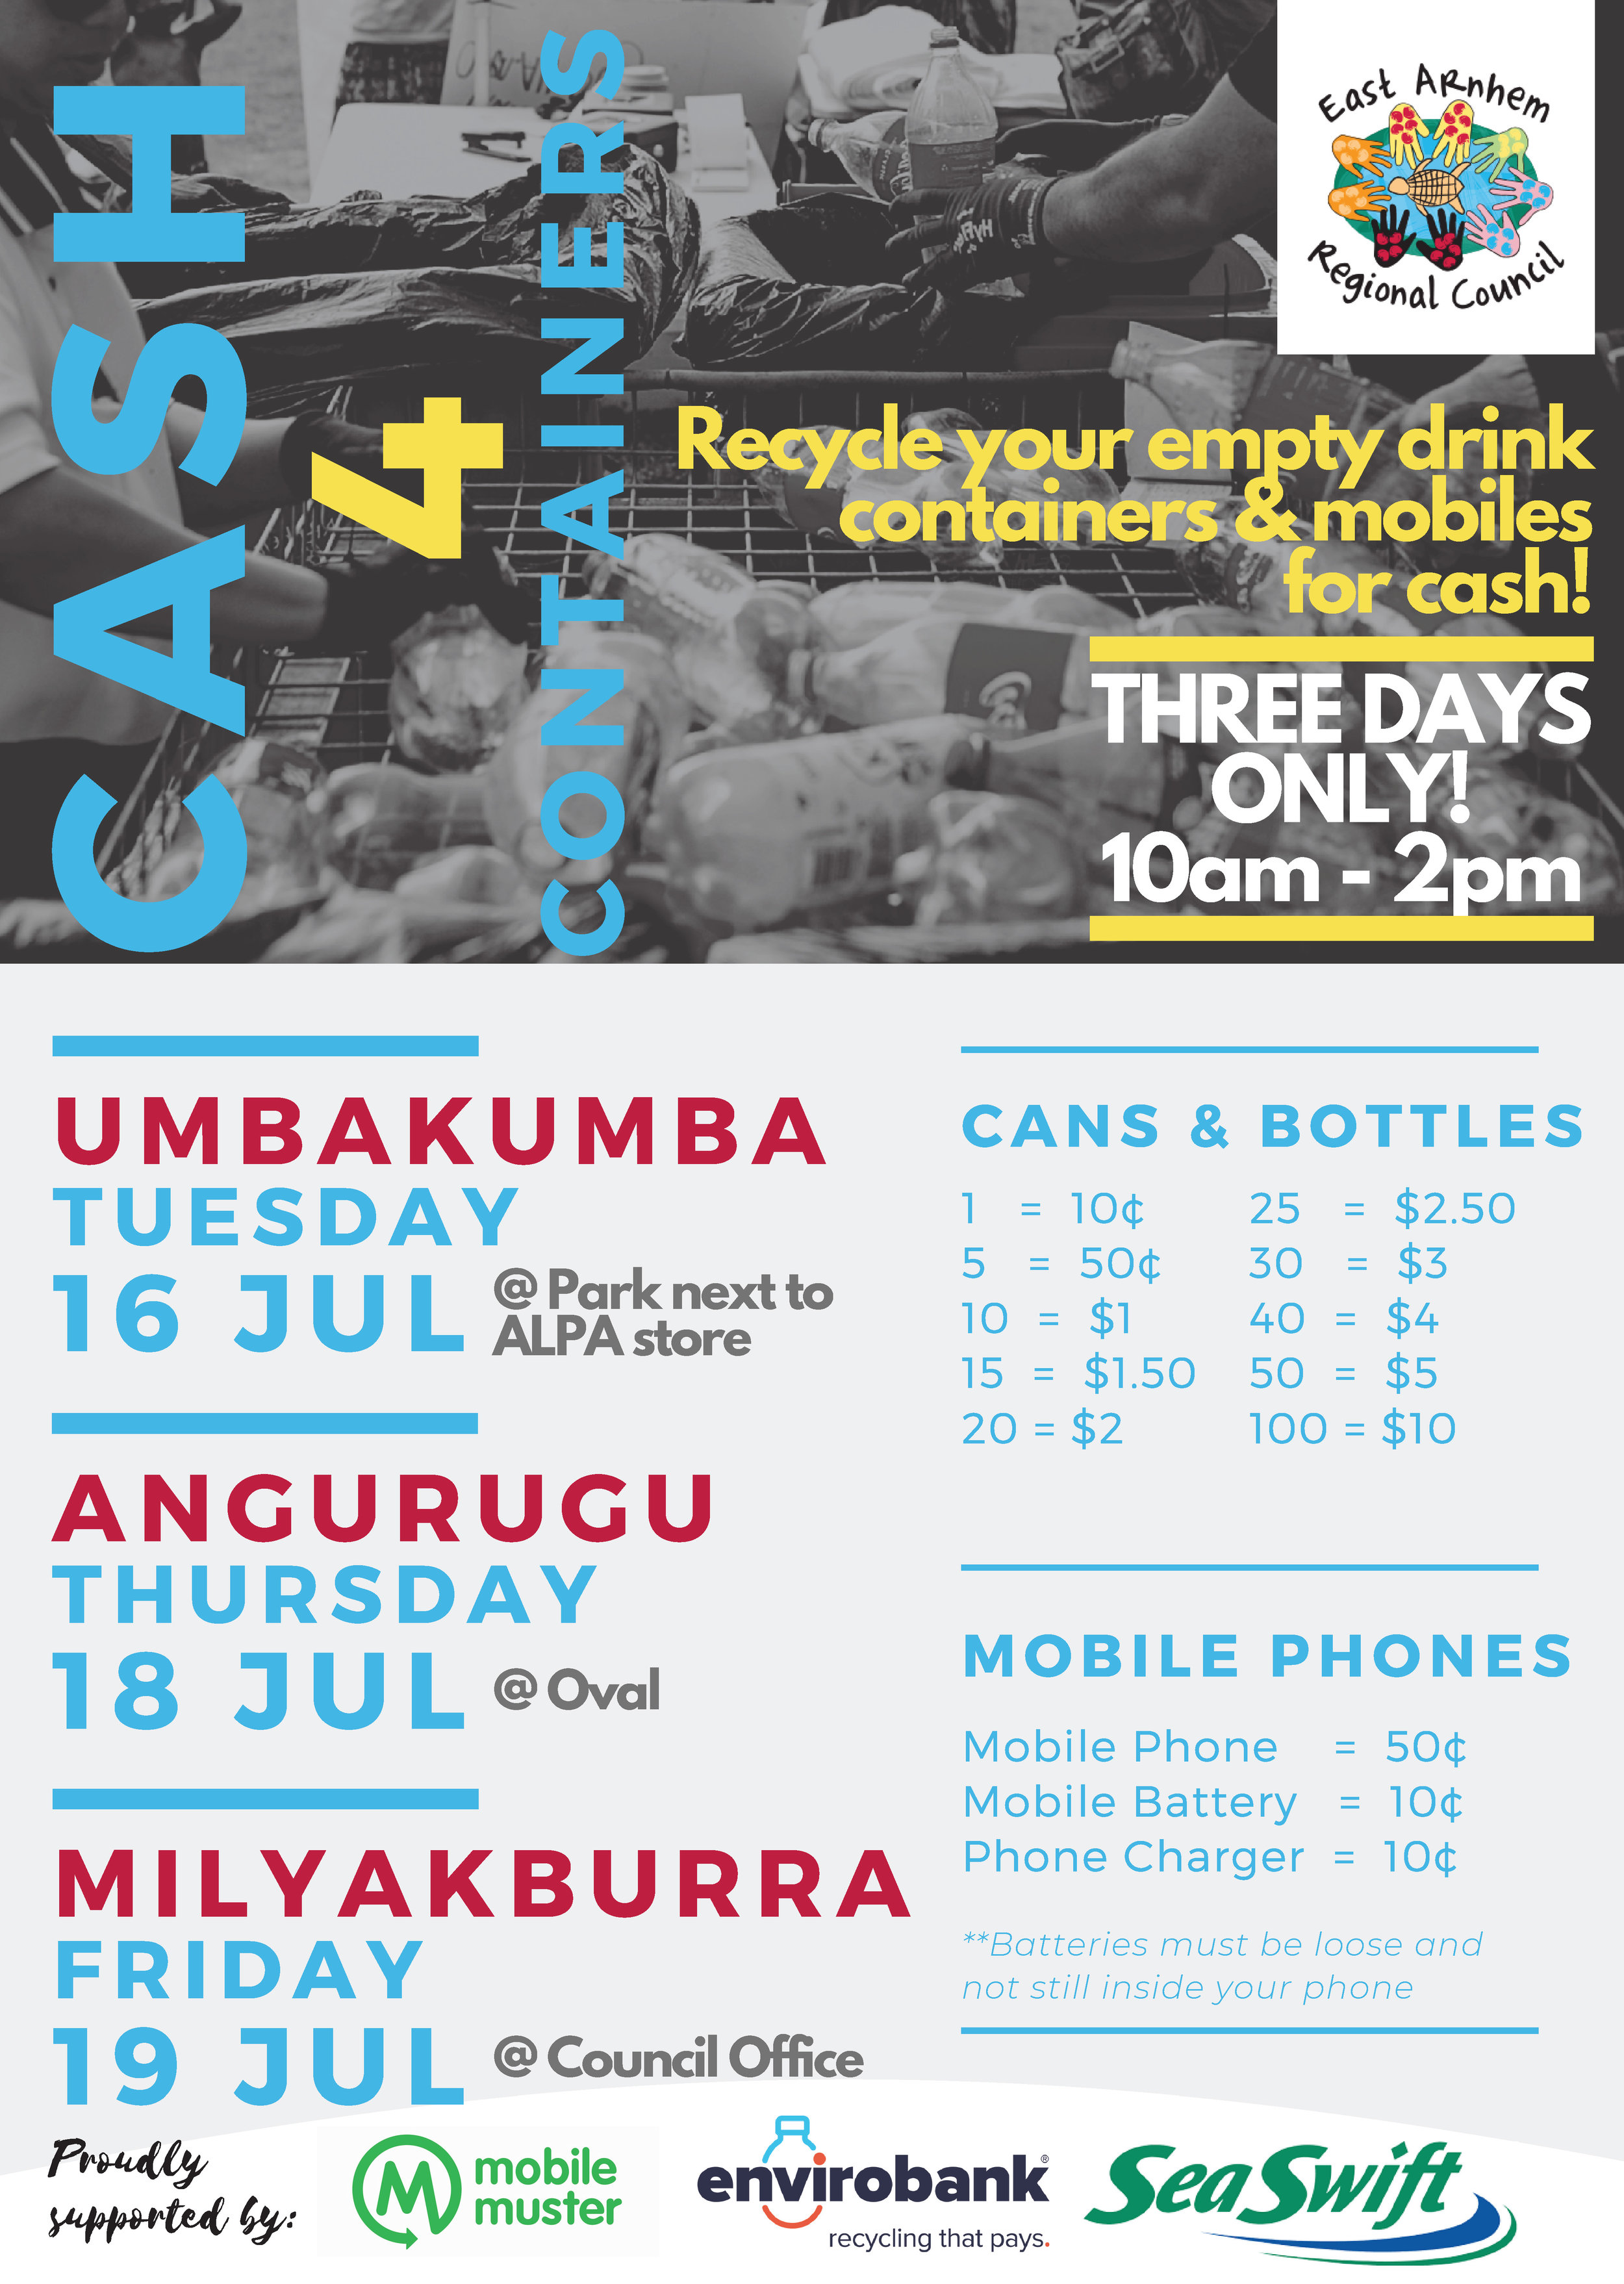 3 DAYS ONLY - CASH 4 CONTAINERS MILYAKBURRA